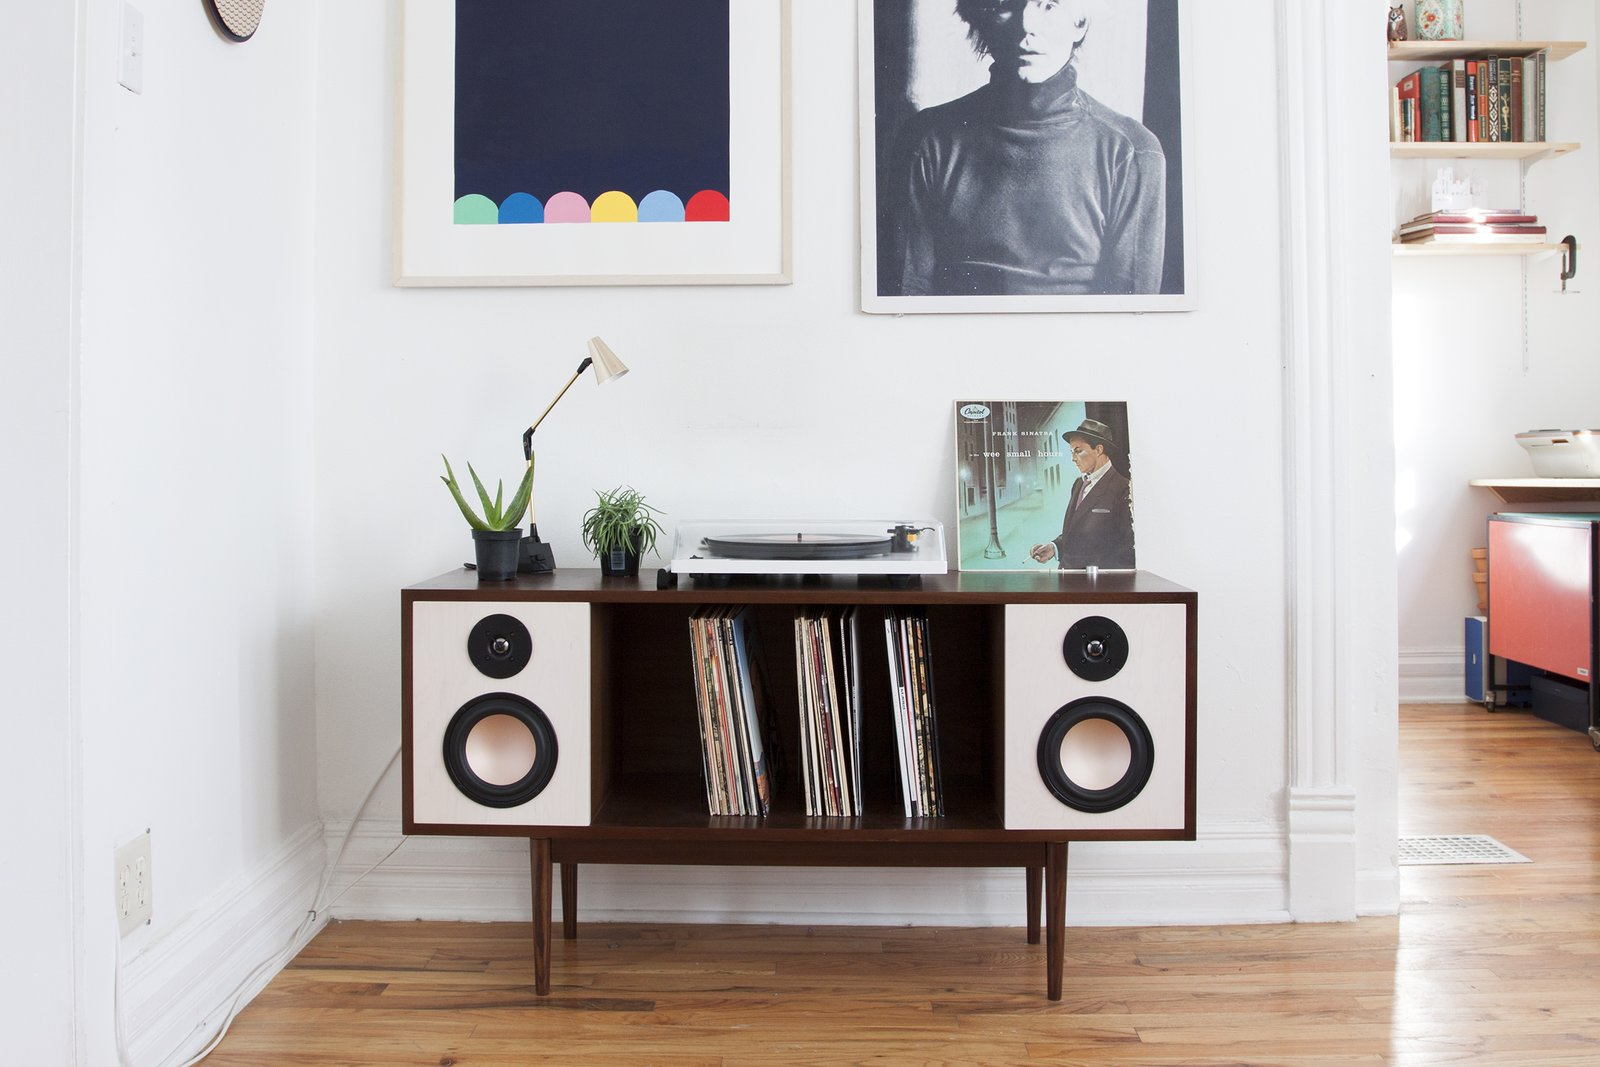 The HiFi Console is a Bluetooth enabled mid-century inspired stereo console. Created by Department Chicago https://www.kickstarter.com/projects/1240320326/the-modern-hifi-stereo-console/description  Sound Style